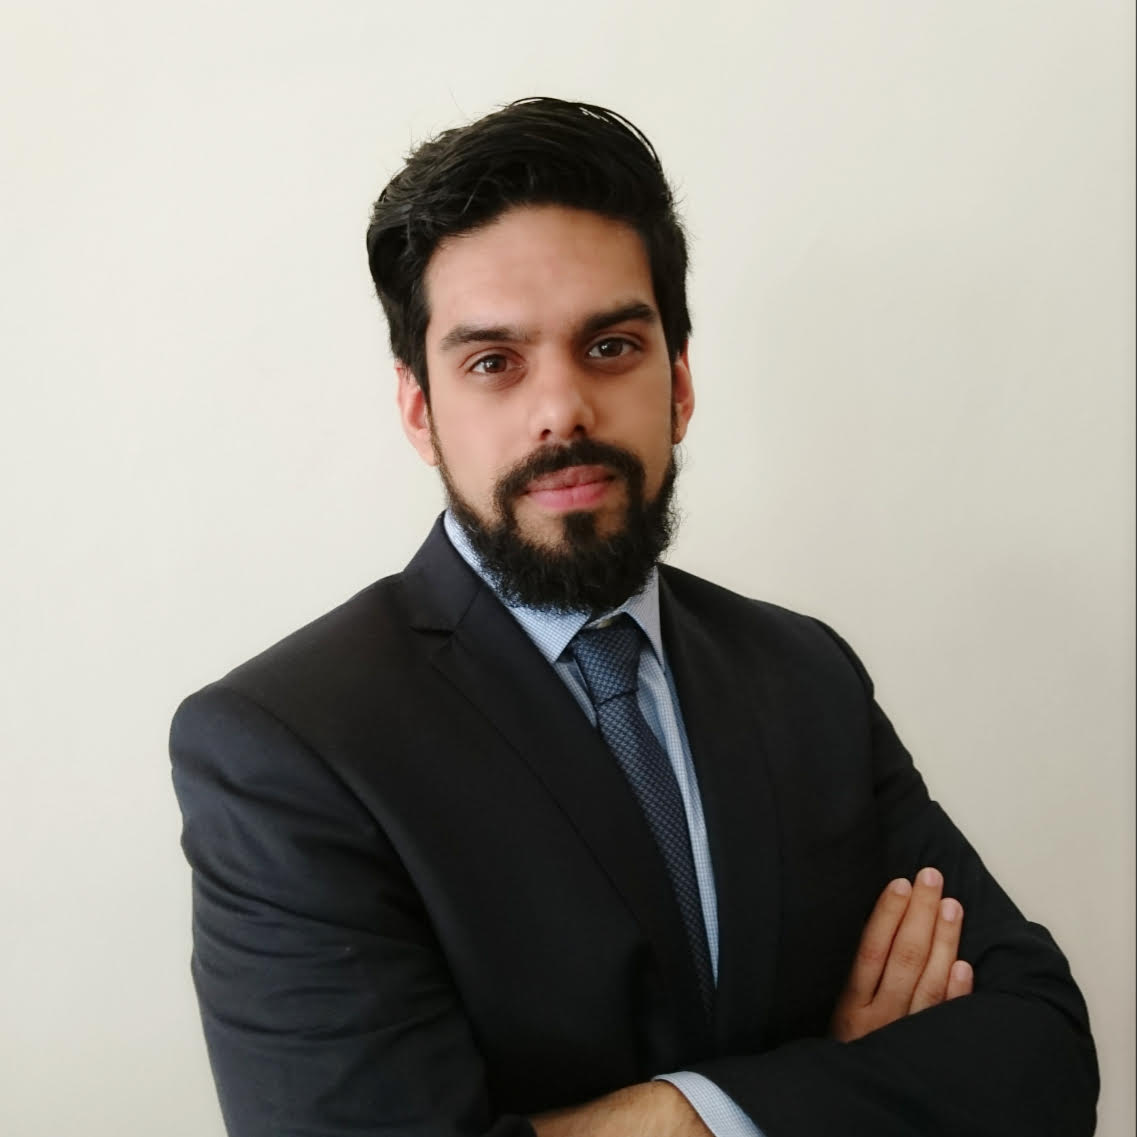 Mohammed Hanif intellectual property lawyer in Jordan